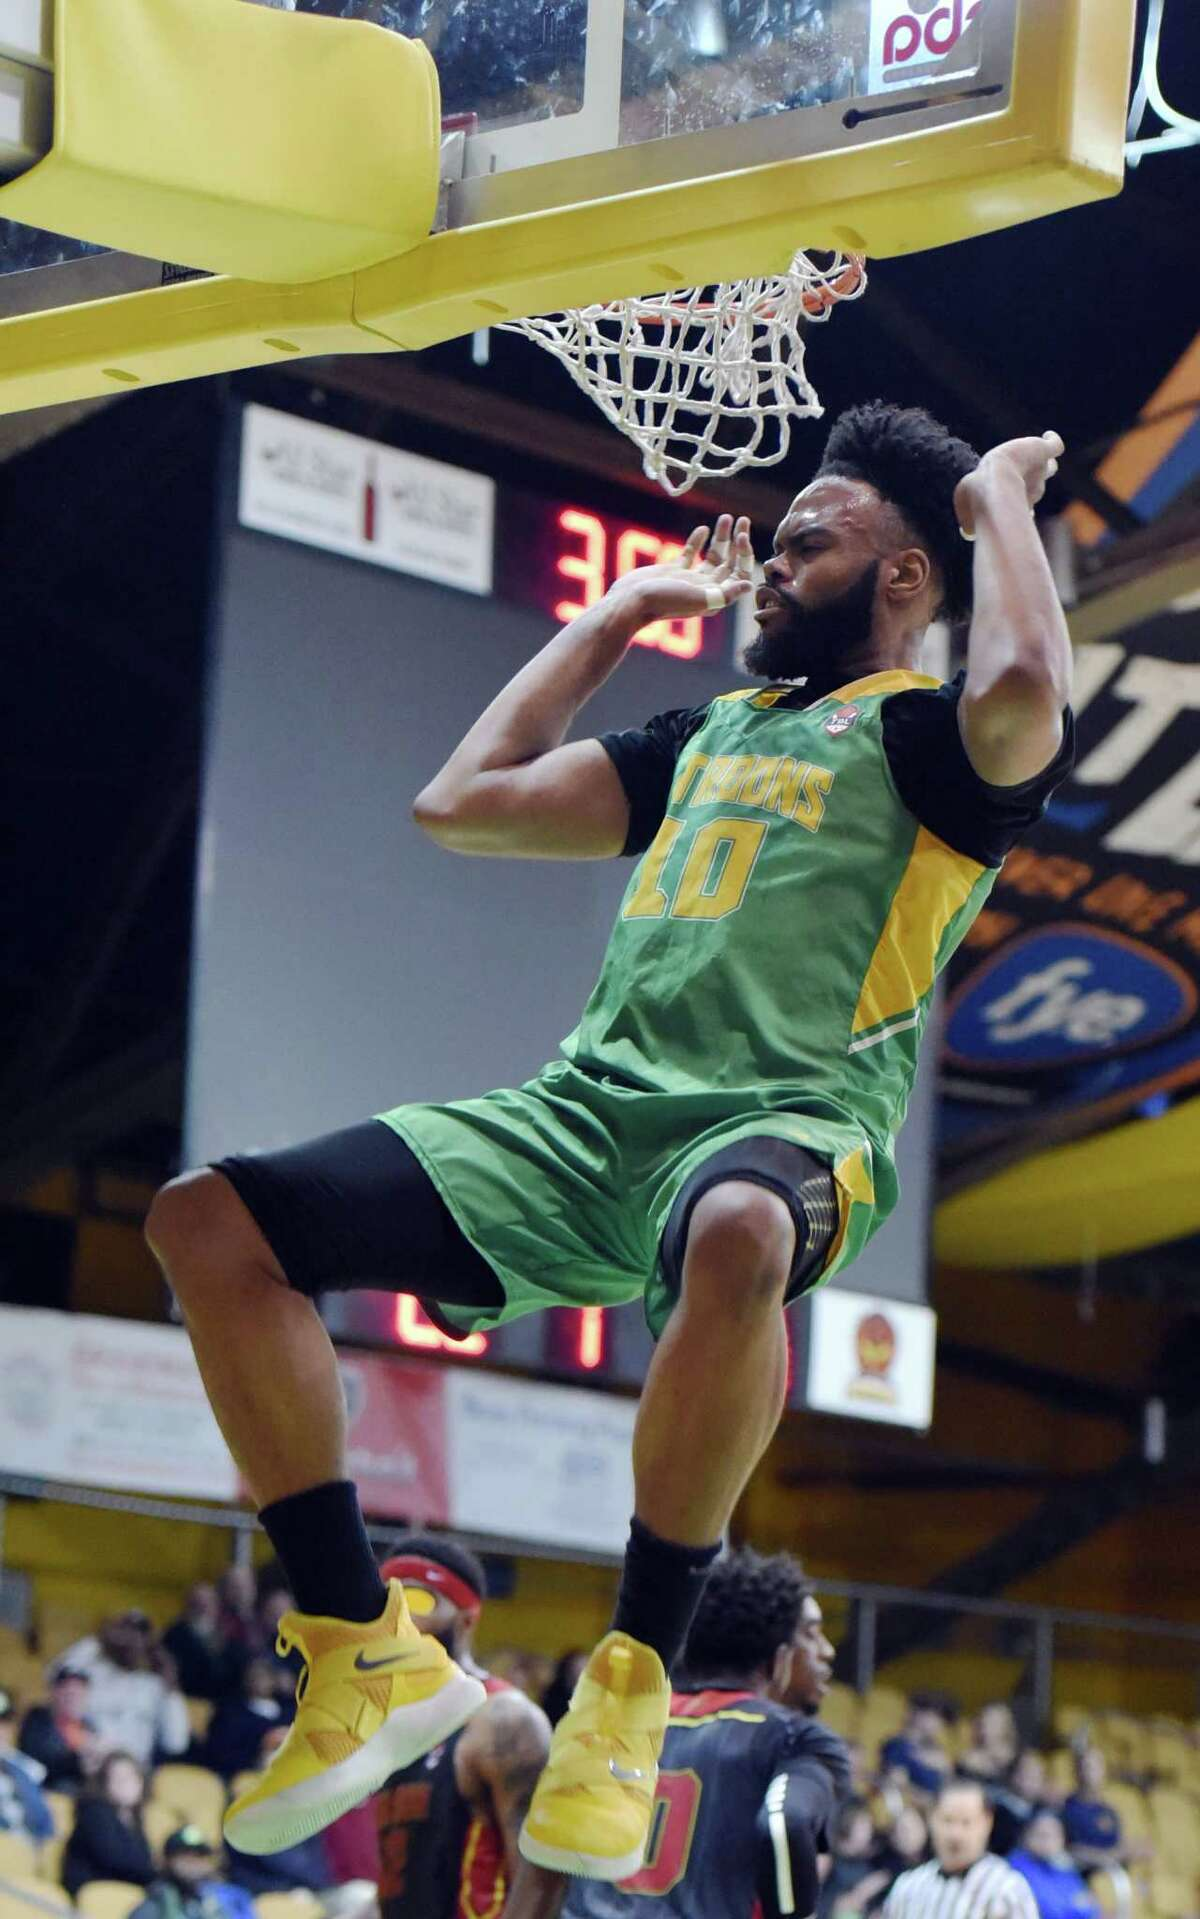 Albany Patroons center Alonzo Murphy dunks the ball during a game against Raleigh on Friday, April 12, 2019 at the Washington Avenue Armory in Albany, NY. (Phoebe Sheehan/Times Union)